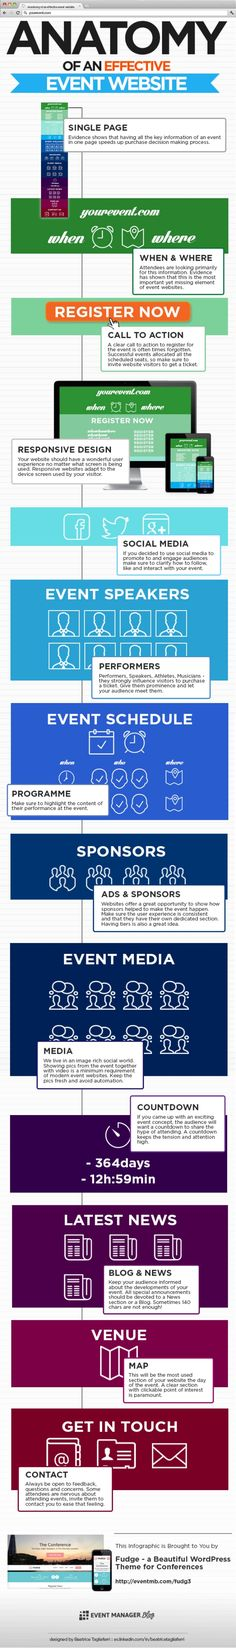 Anatomy of an Effective Event Webiste by Julius Solaris via slideshare from 10 Infographics to Plan Your Next Event Read more at http://www.eventmanagerblog.com/event-infographics